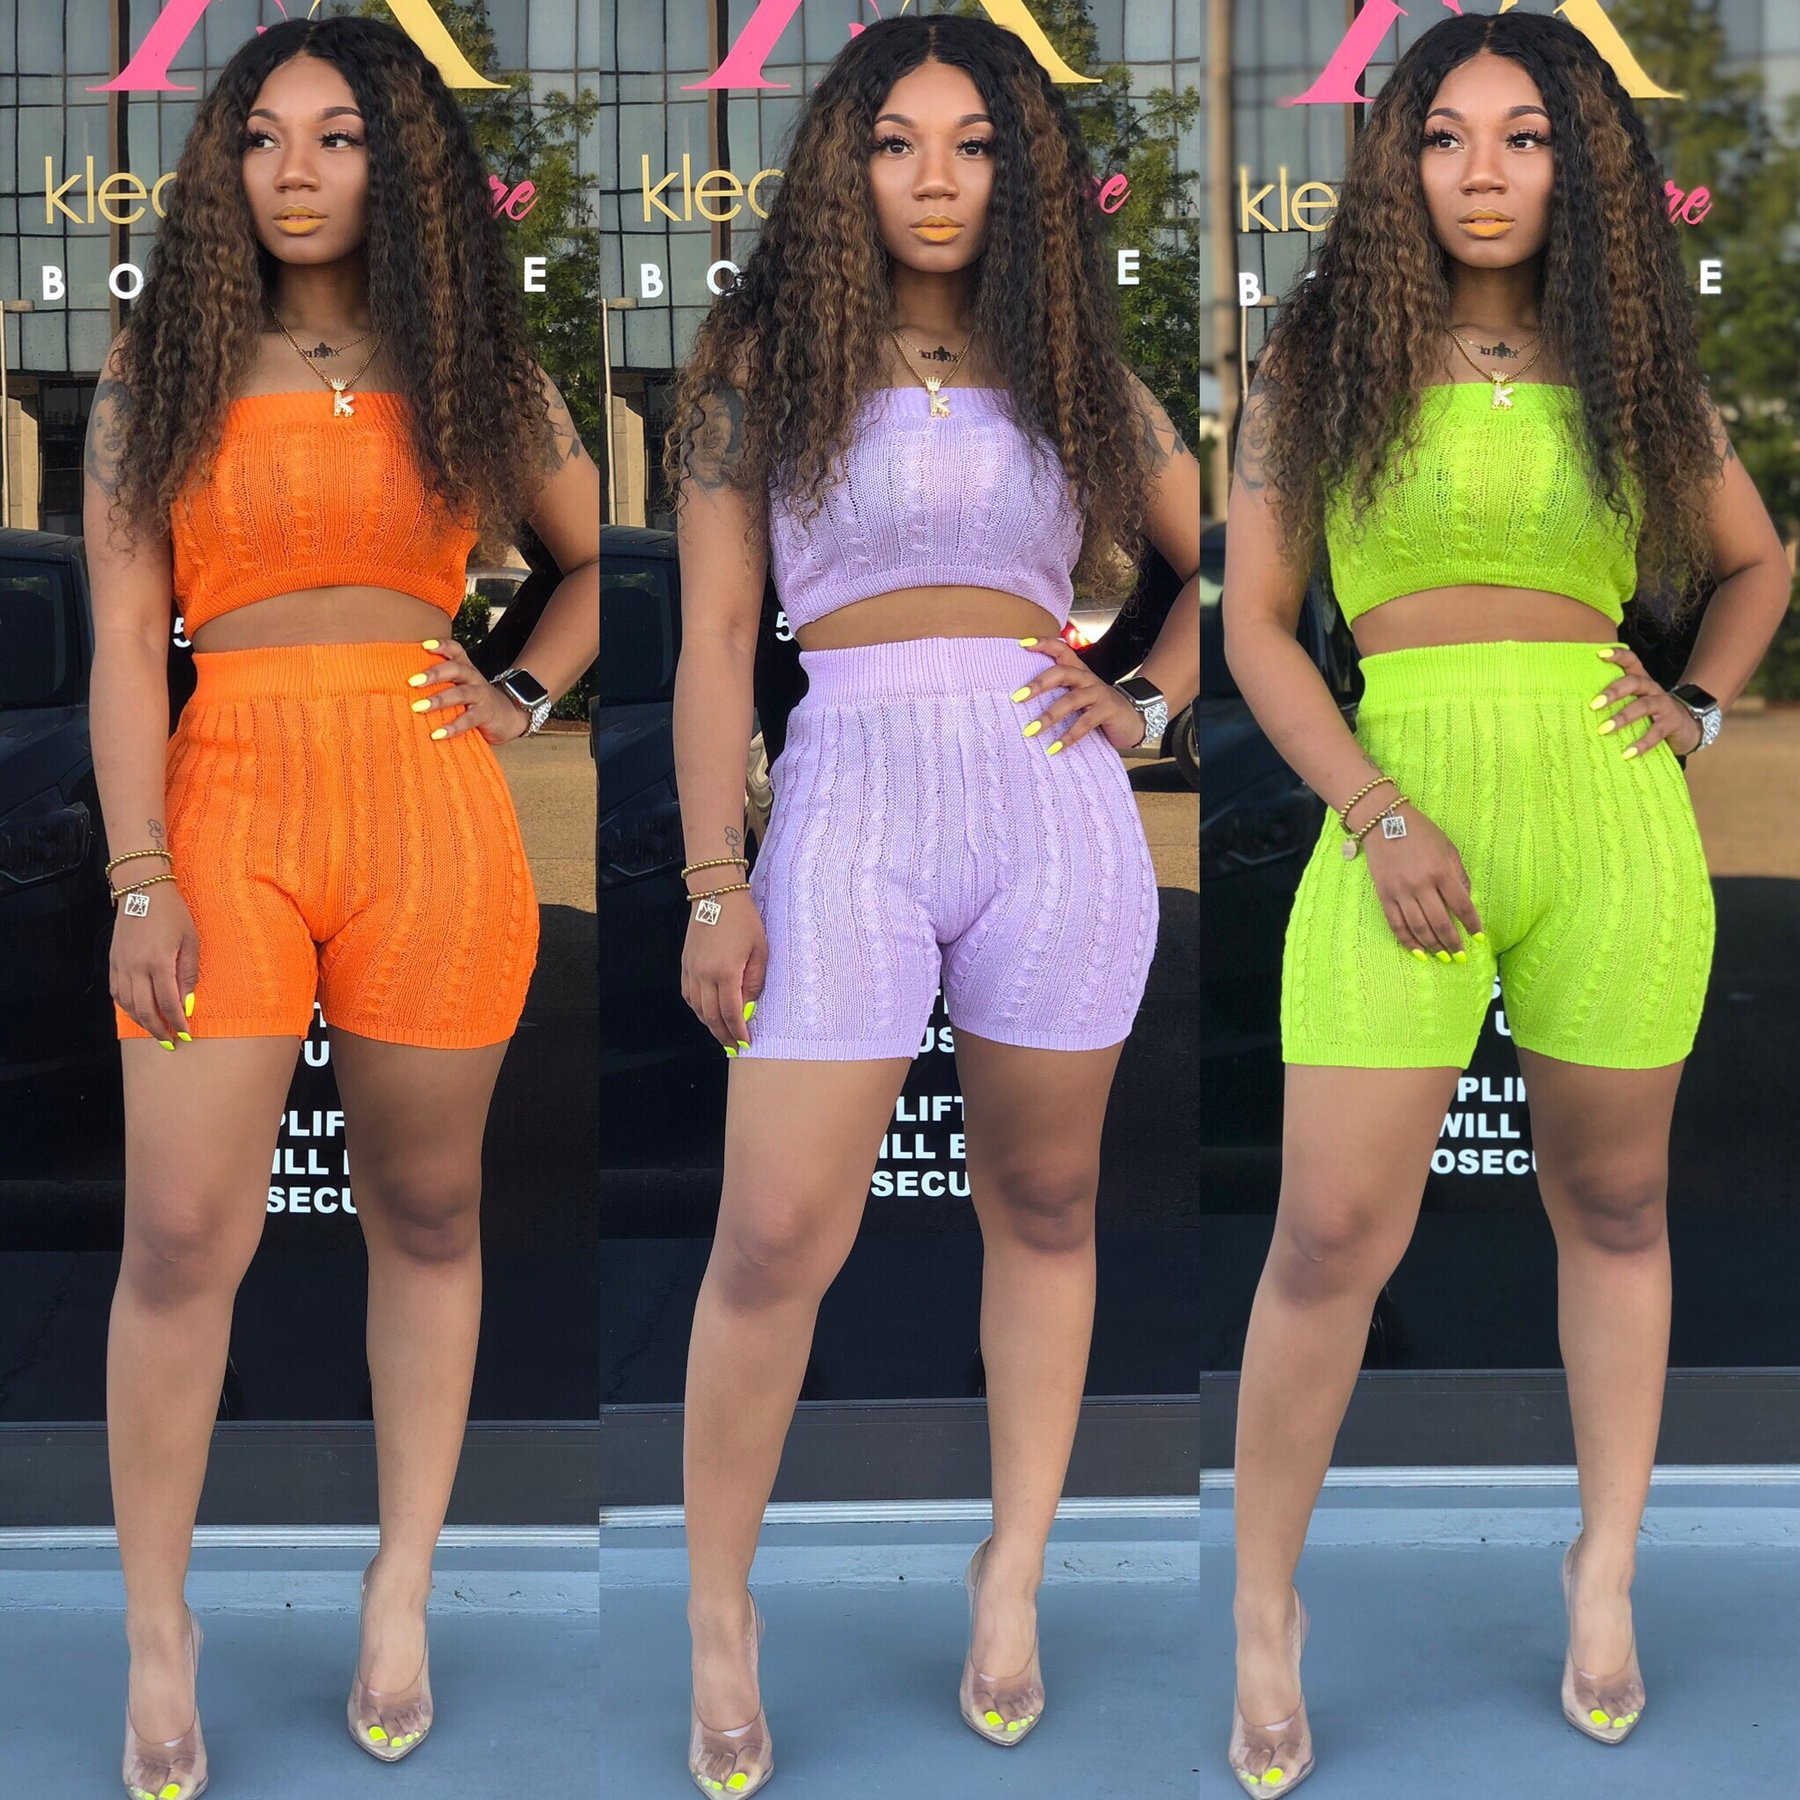 Adogirl Solid Knited Two Piece Set Women Strapless Sleeveless Tube Crop Top And Skinny Shorts Sexy Night Club Party Outfits